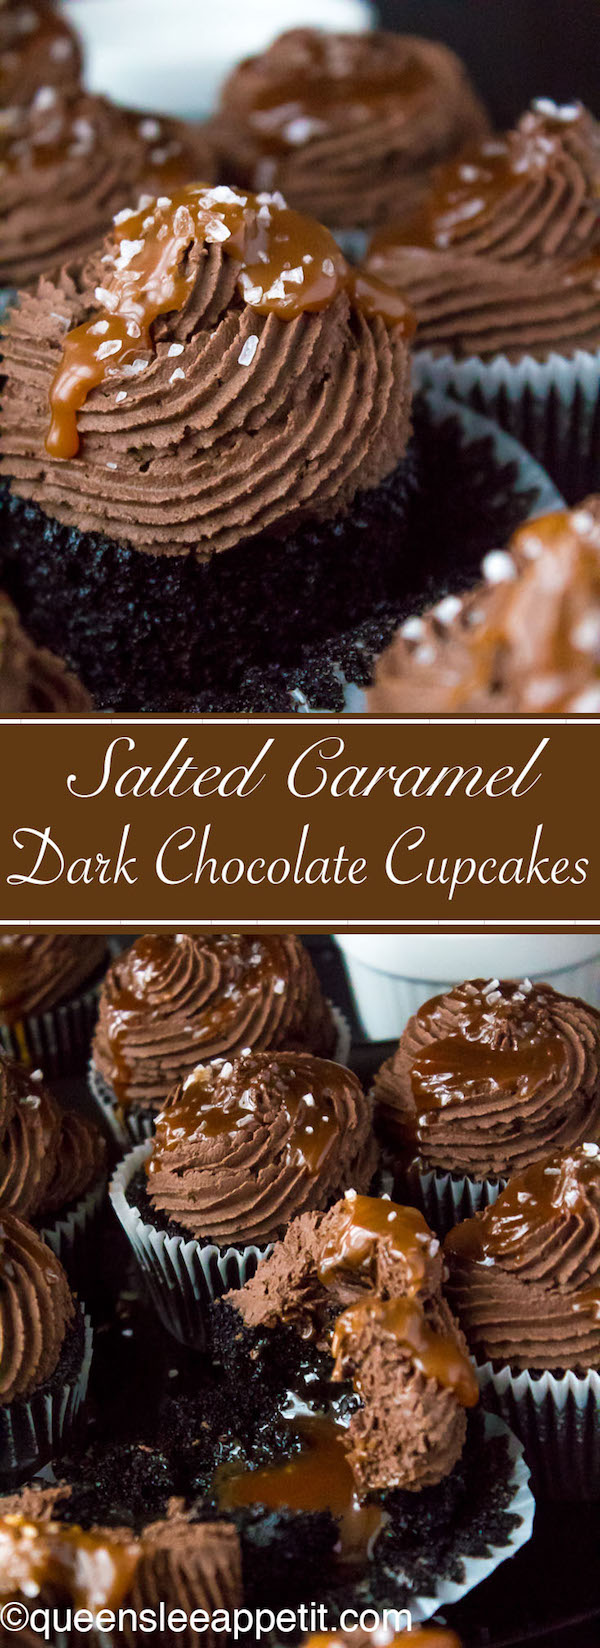 These Salted Caramel Dark Chocolate Cupcakes are made with a moist Dark Chocolate Cake, filled with Salted Caramel Sauce, topped with a rich and decadent Dark Chocolate Buttercream and a sprinkle of sea salt. They're simply irresistible!